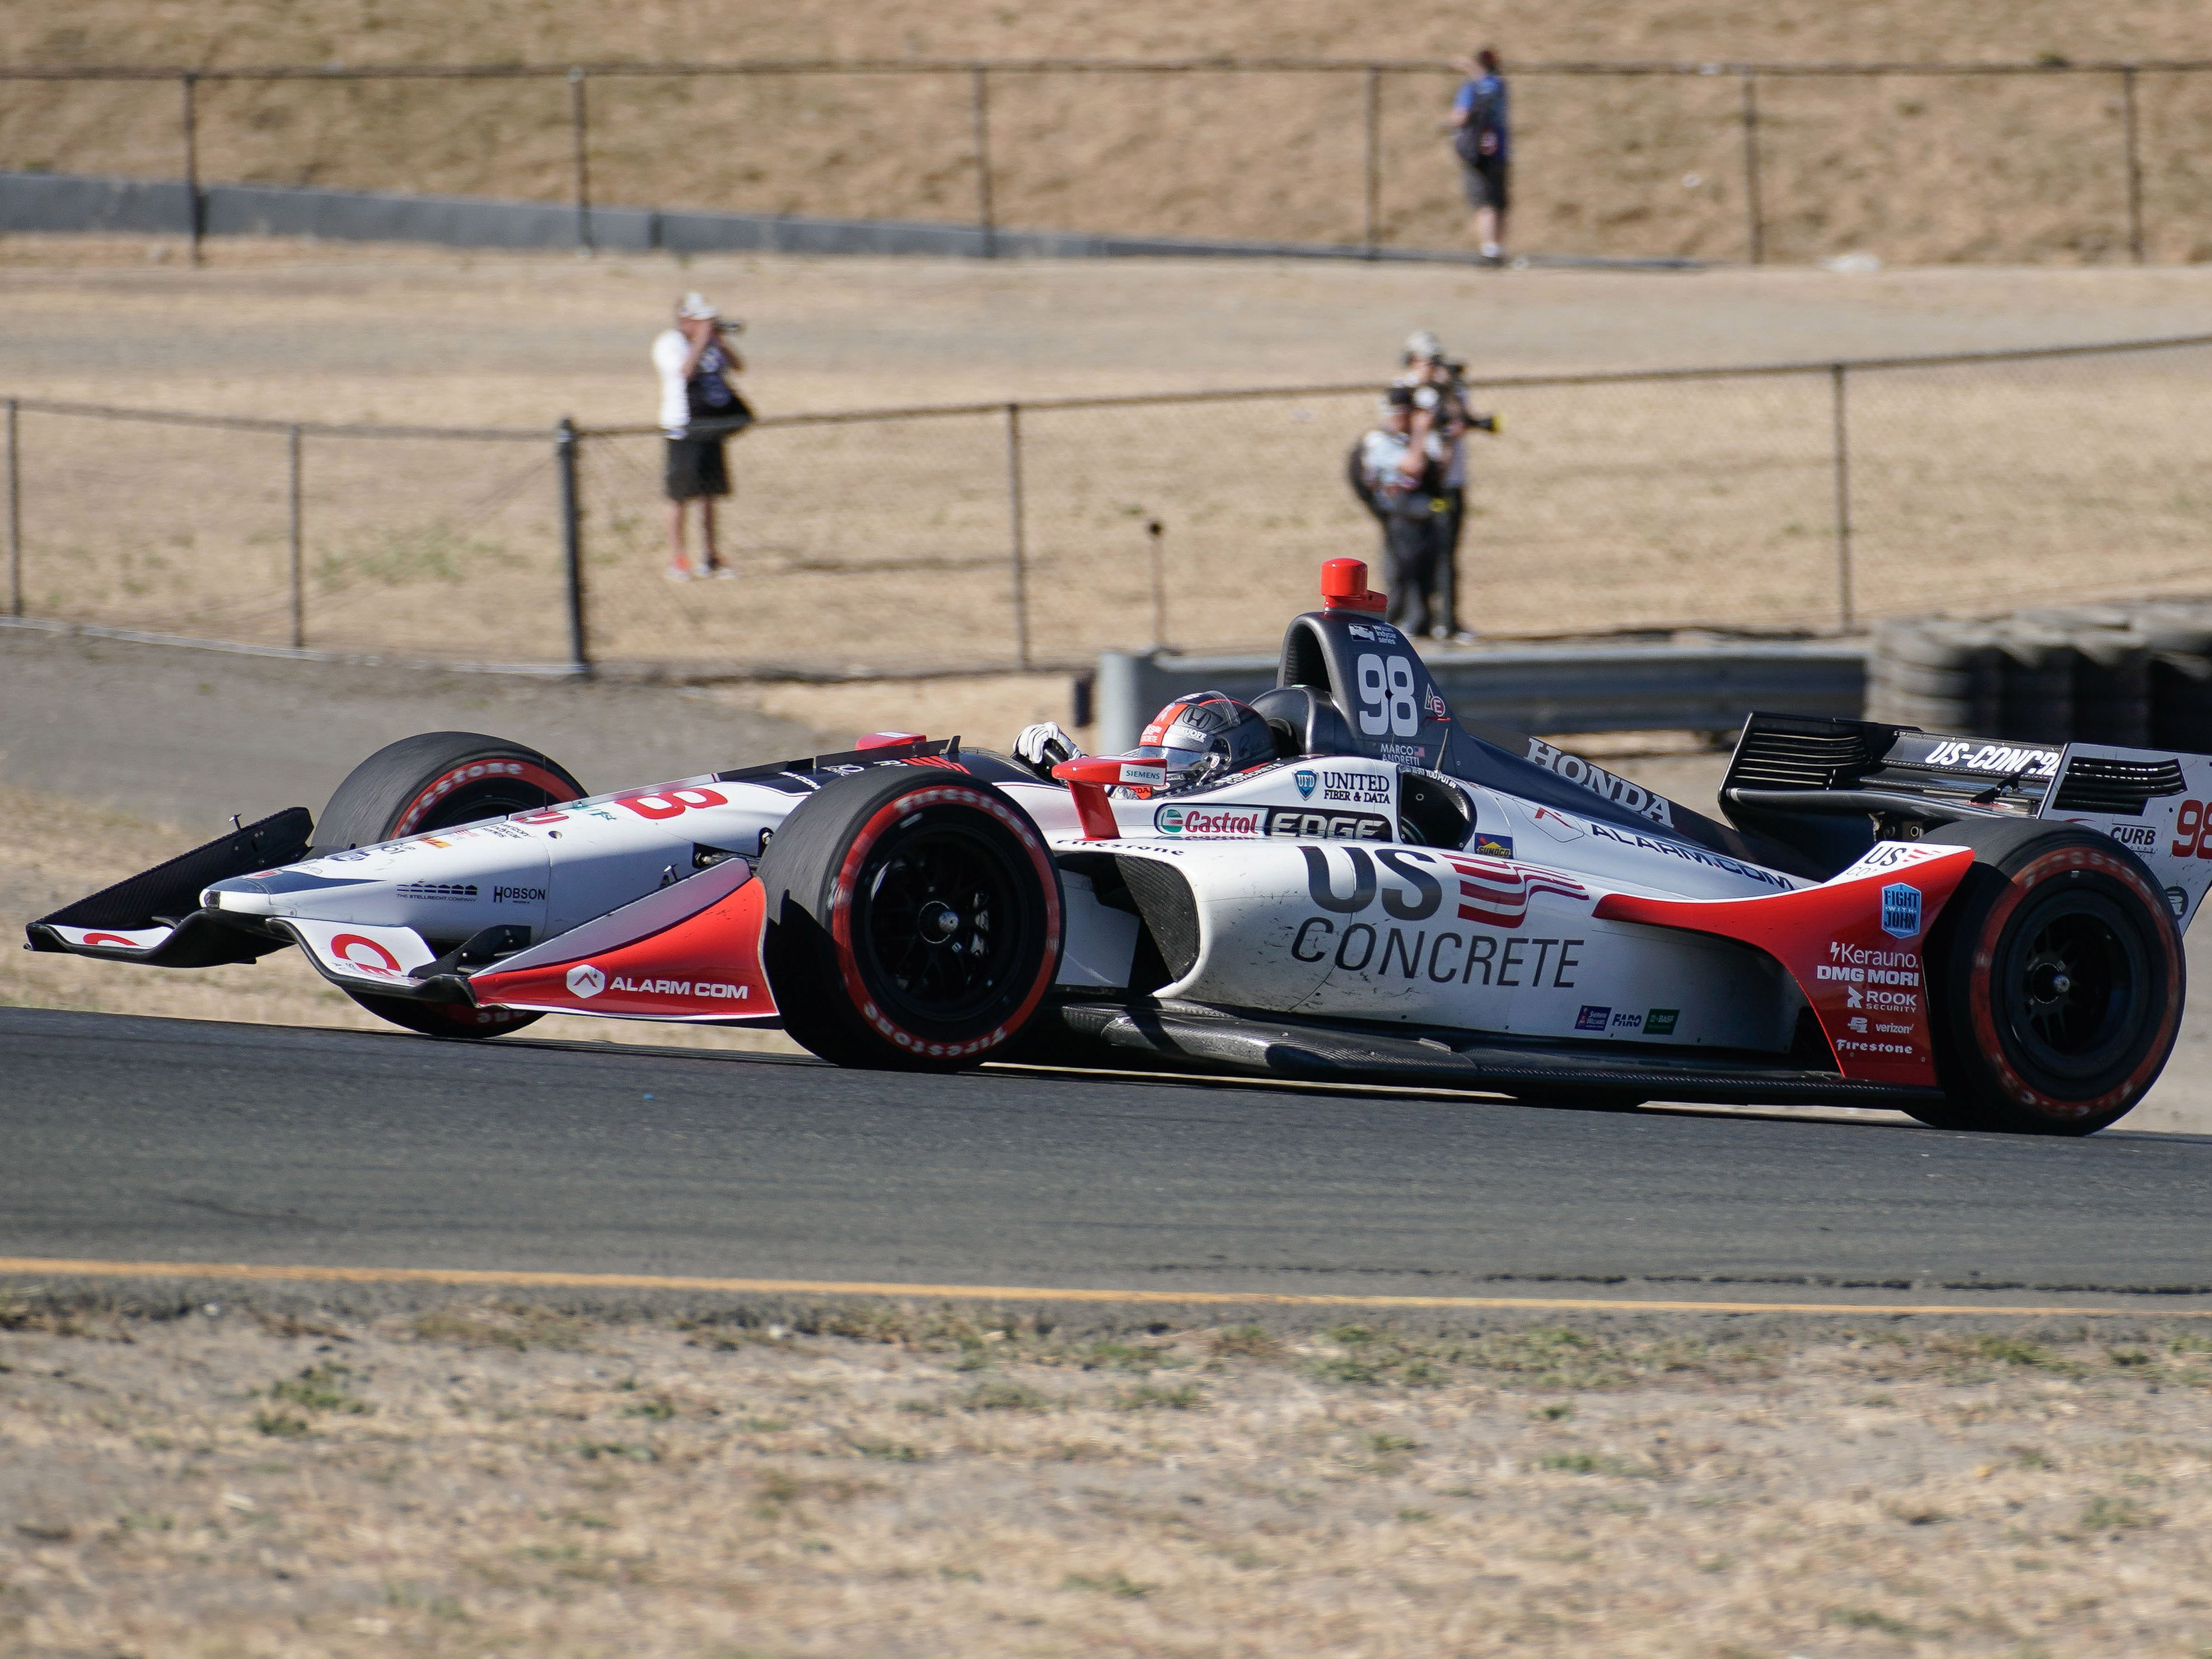 Sep 16, 2018; Sonoma, CA, USA;  Indycar driver Marco Andretti (98) during the Grand Prix of Sonoma at Sonoma Raceway. Mandatory Credit: Stan Szeto-USA TODAY Sports